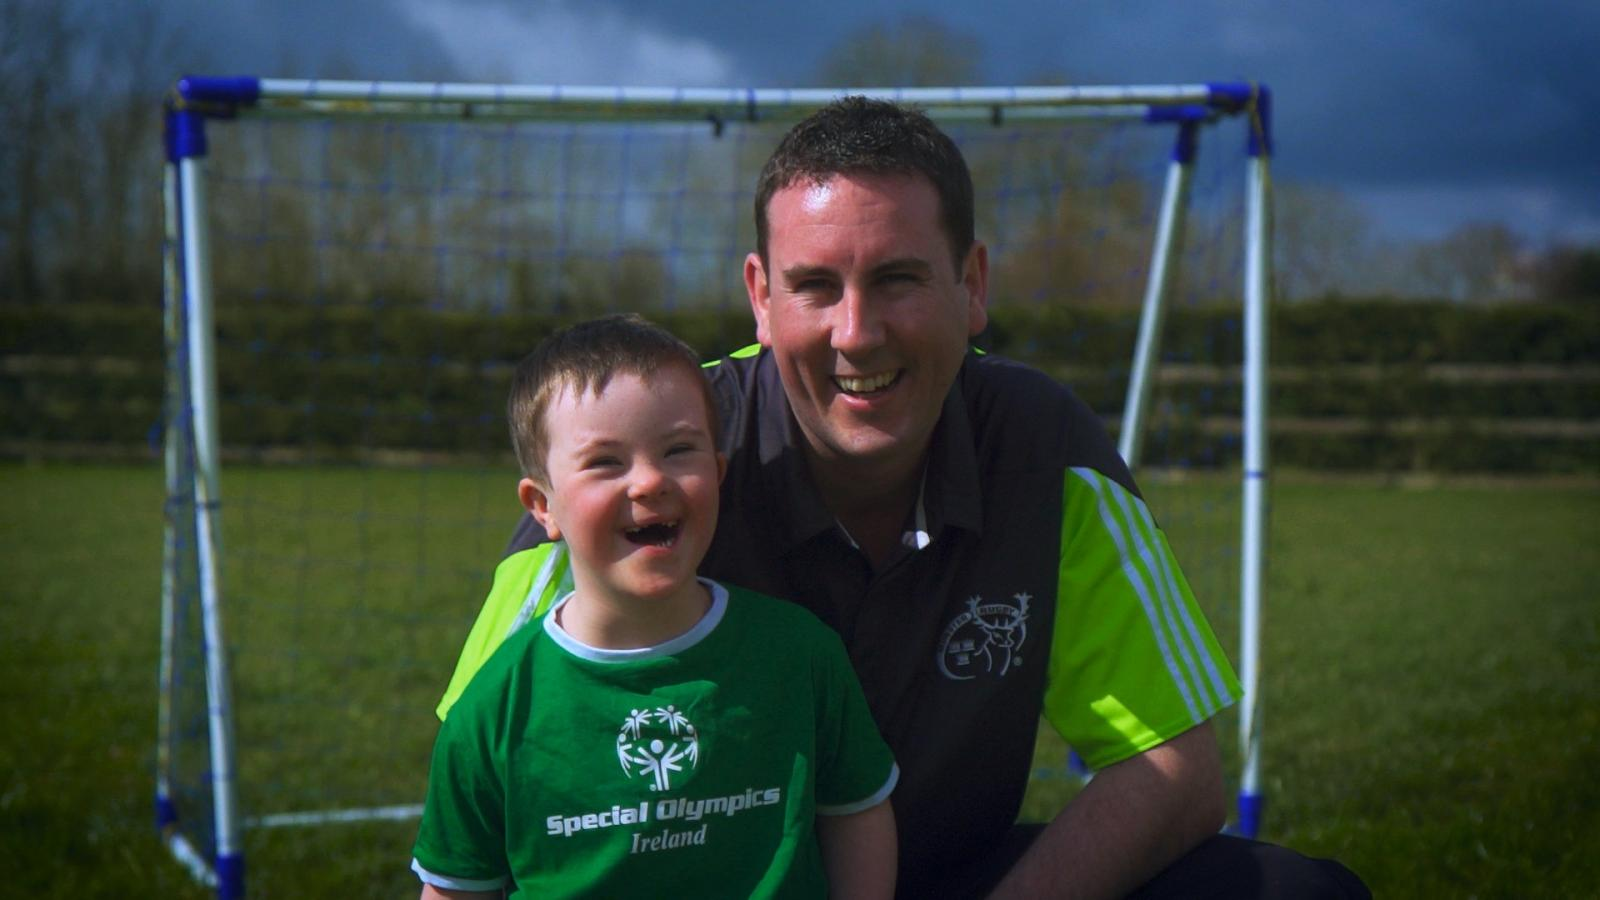 Find out ways you can support future champions of Special Olympics Ireland